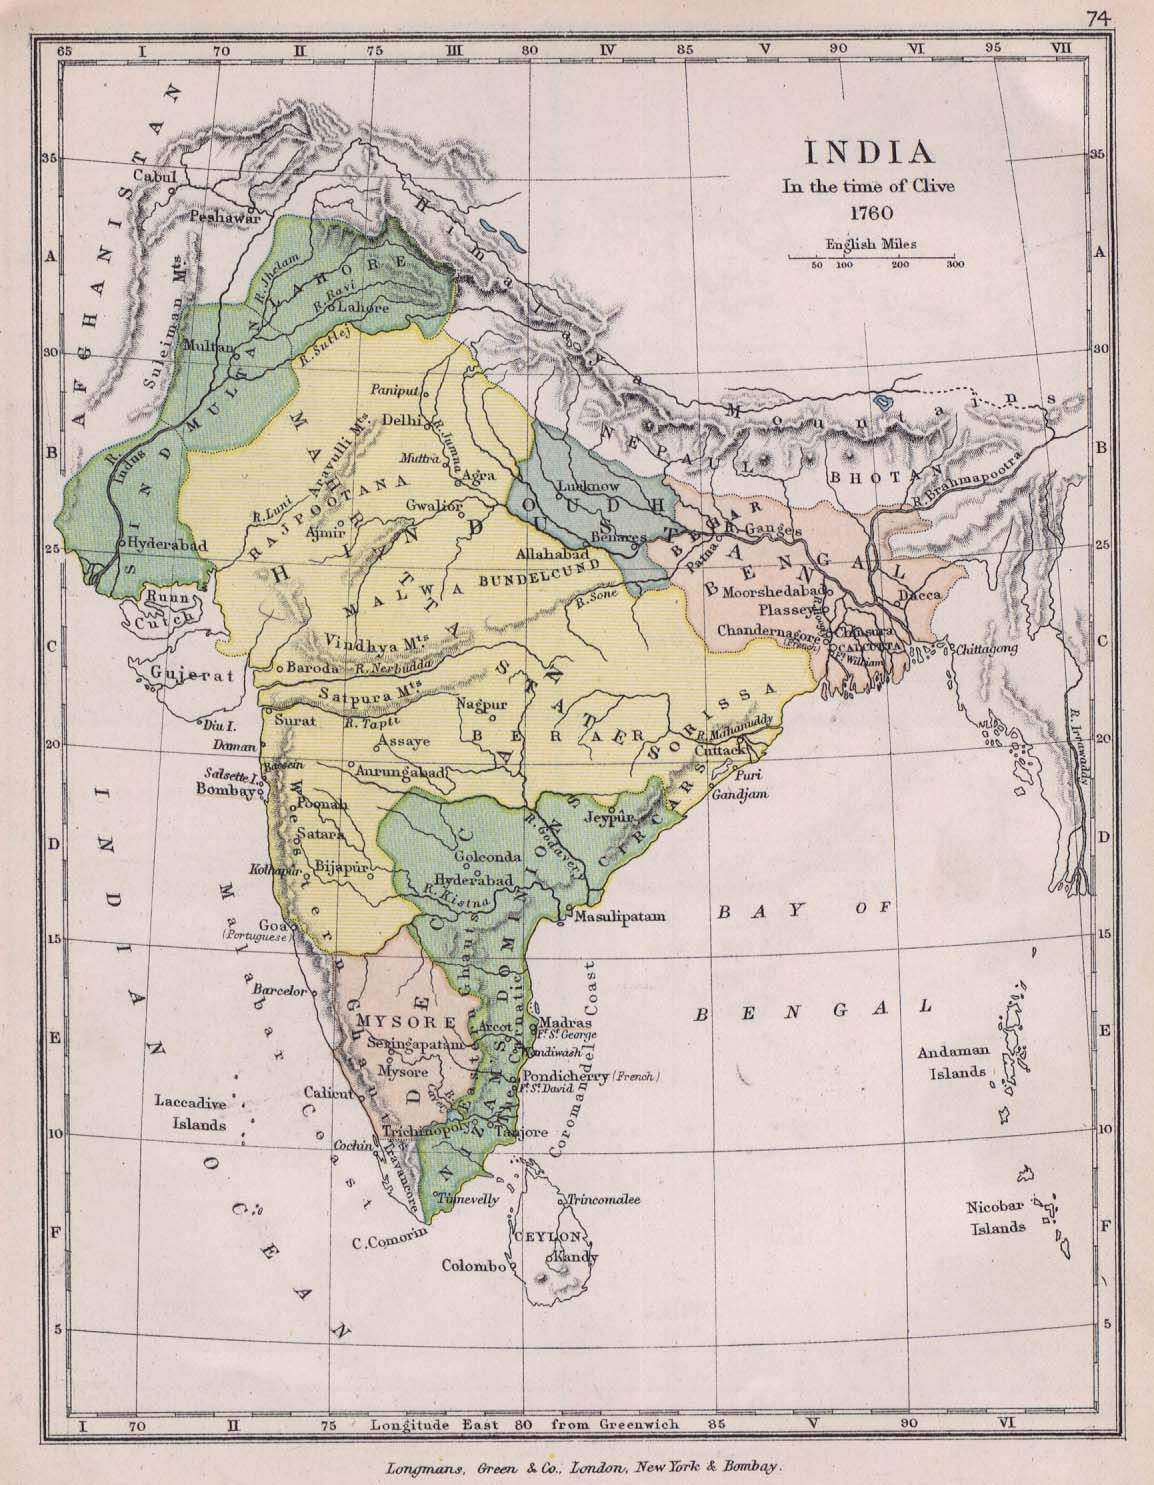 Historical Maps India In 1760 • Mapsof.net on early india map, middle east india map, ancient india map, hyderabad india map, ind map, india globe map, mumbai india map, india capital map, map sri lanka map, delhi map, map southeast asia map, geographical india map, u.s river map, pune india map, history map, harappa india map, calcutta india map, map in india, us geographical map, kathmandu india map,